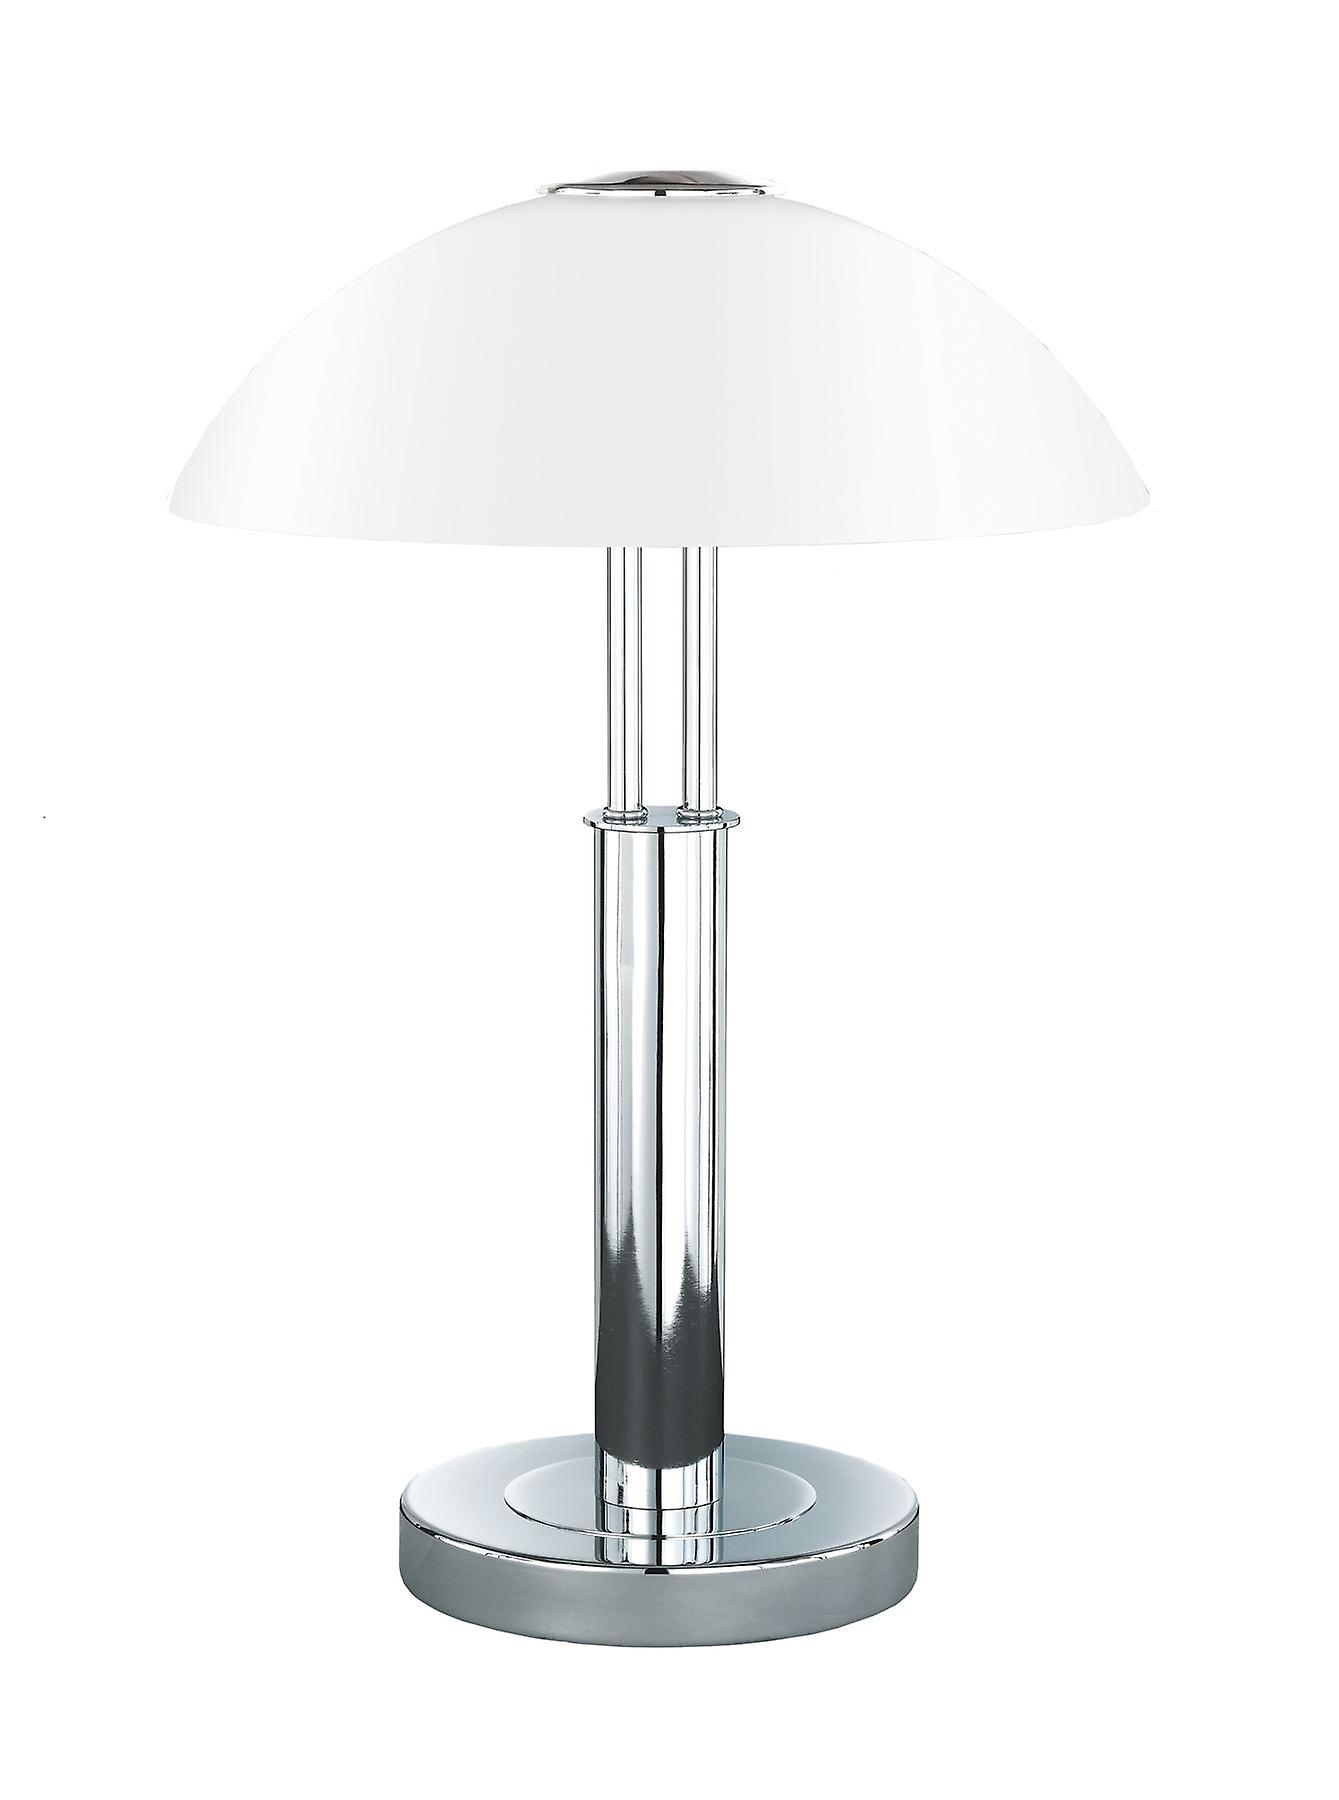 Wofi Prescot - 2 lumière Table Lamp Chrome - 8747.02.01.0000